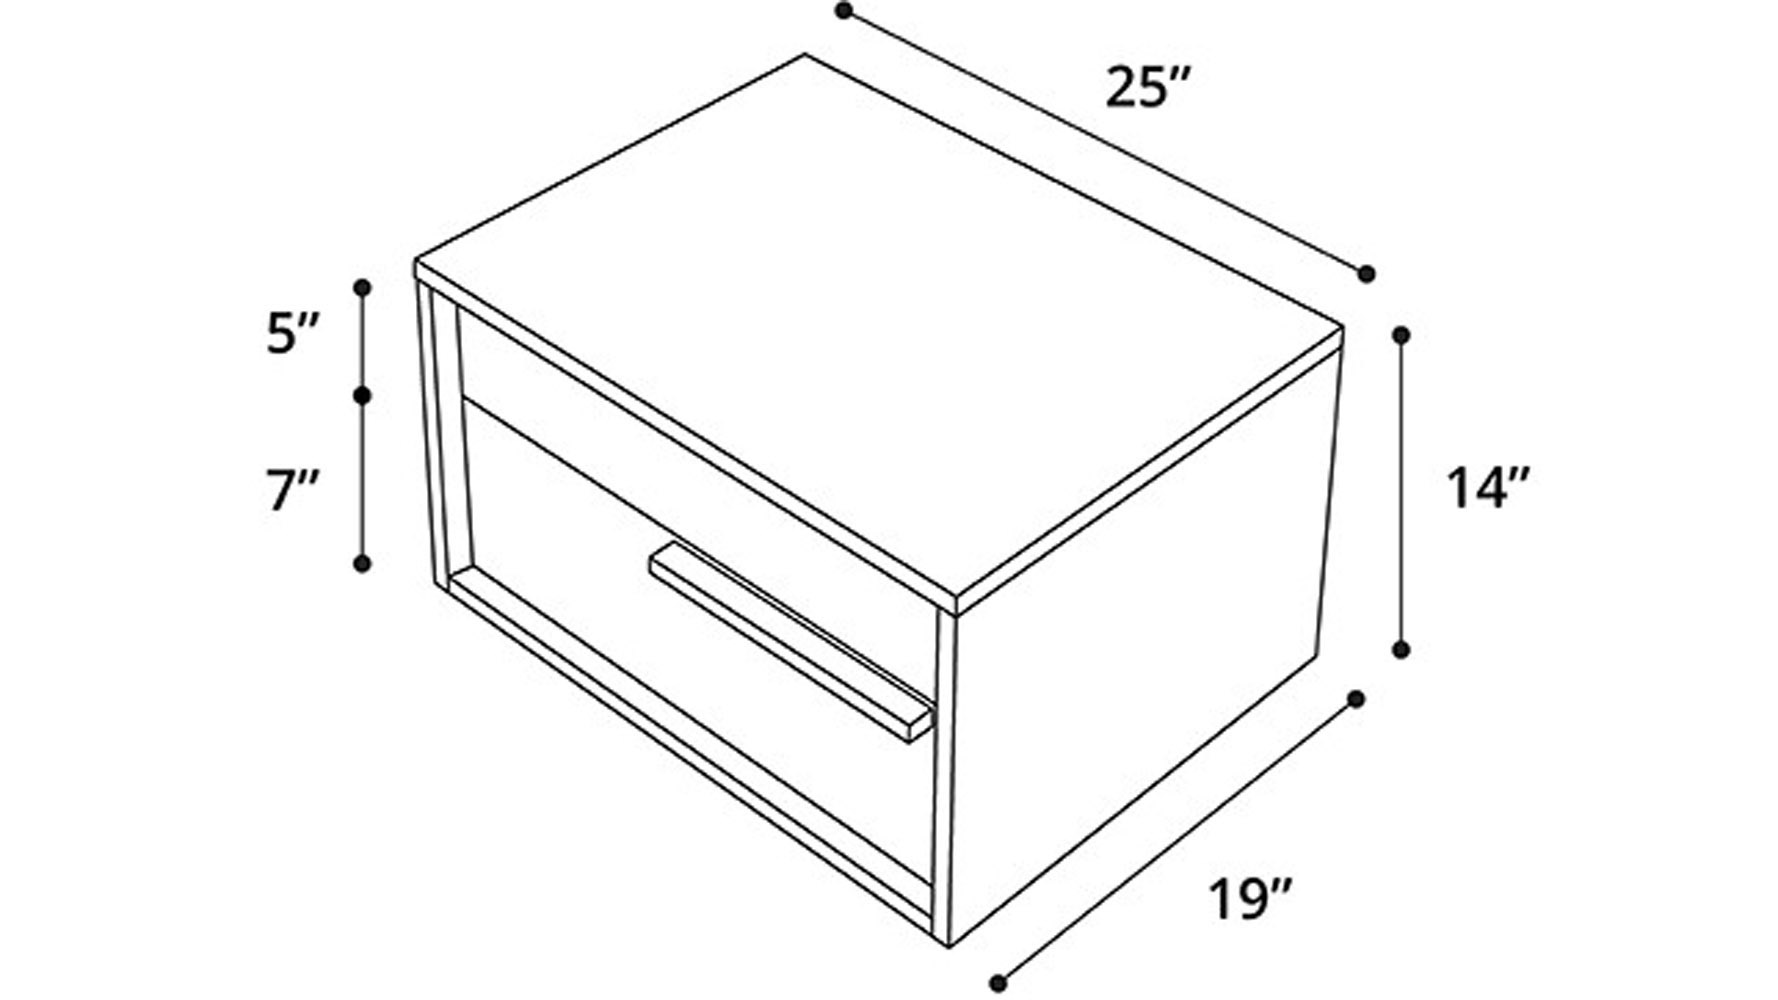 Nightstand Dimensions Proof